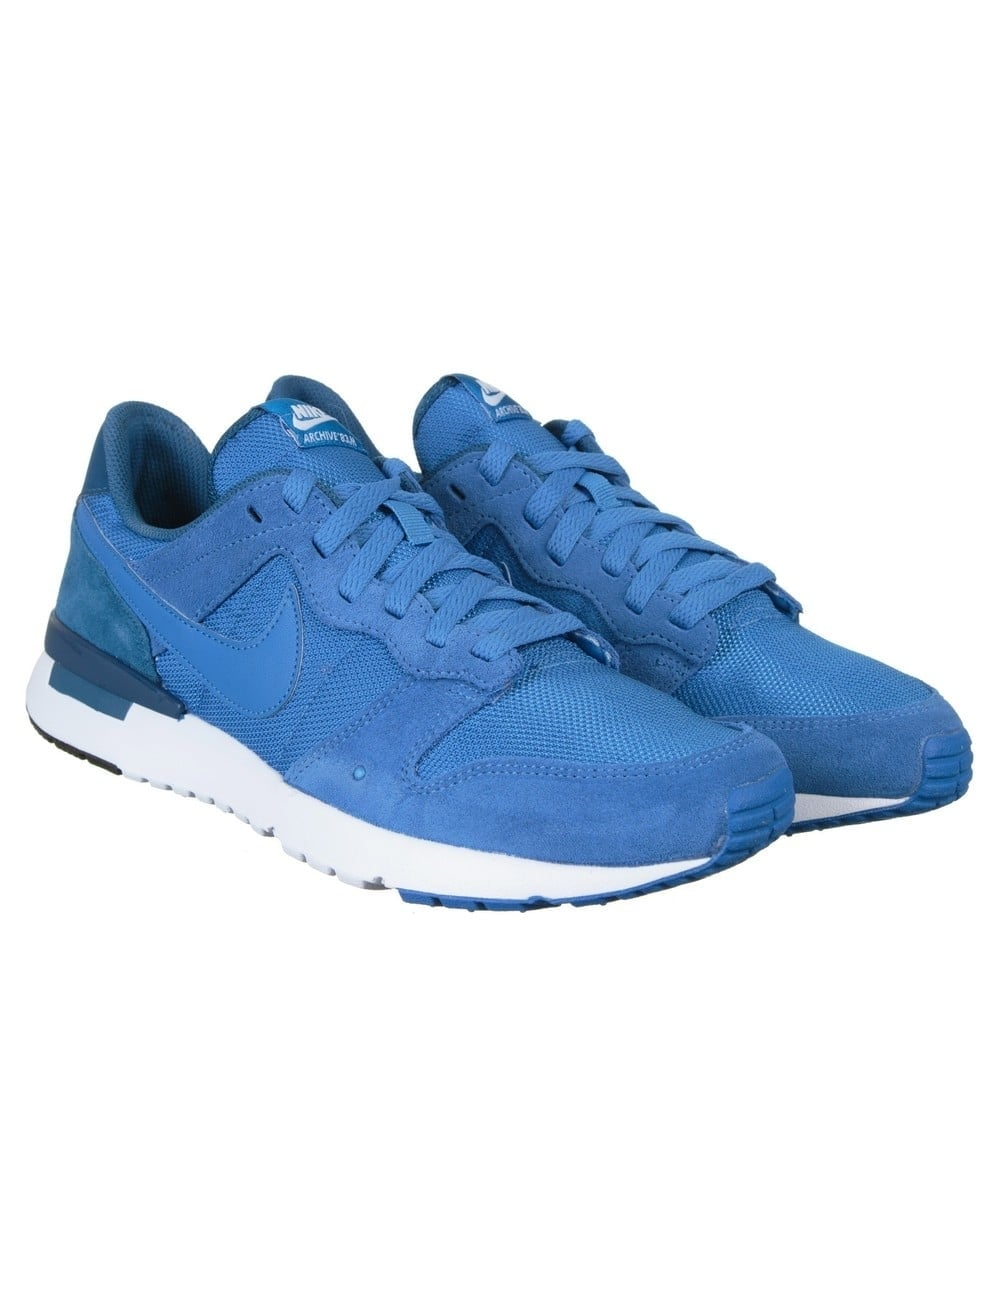 official photos cf687 29c17 Archive   039 83.M Shoes - FNTN Blue